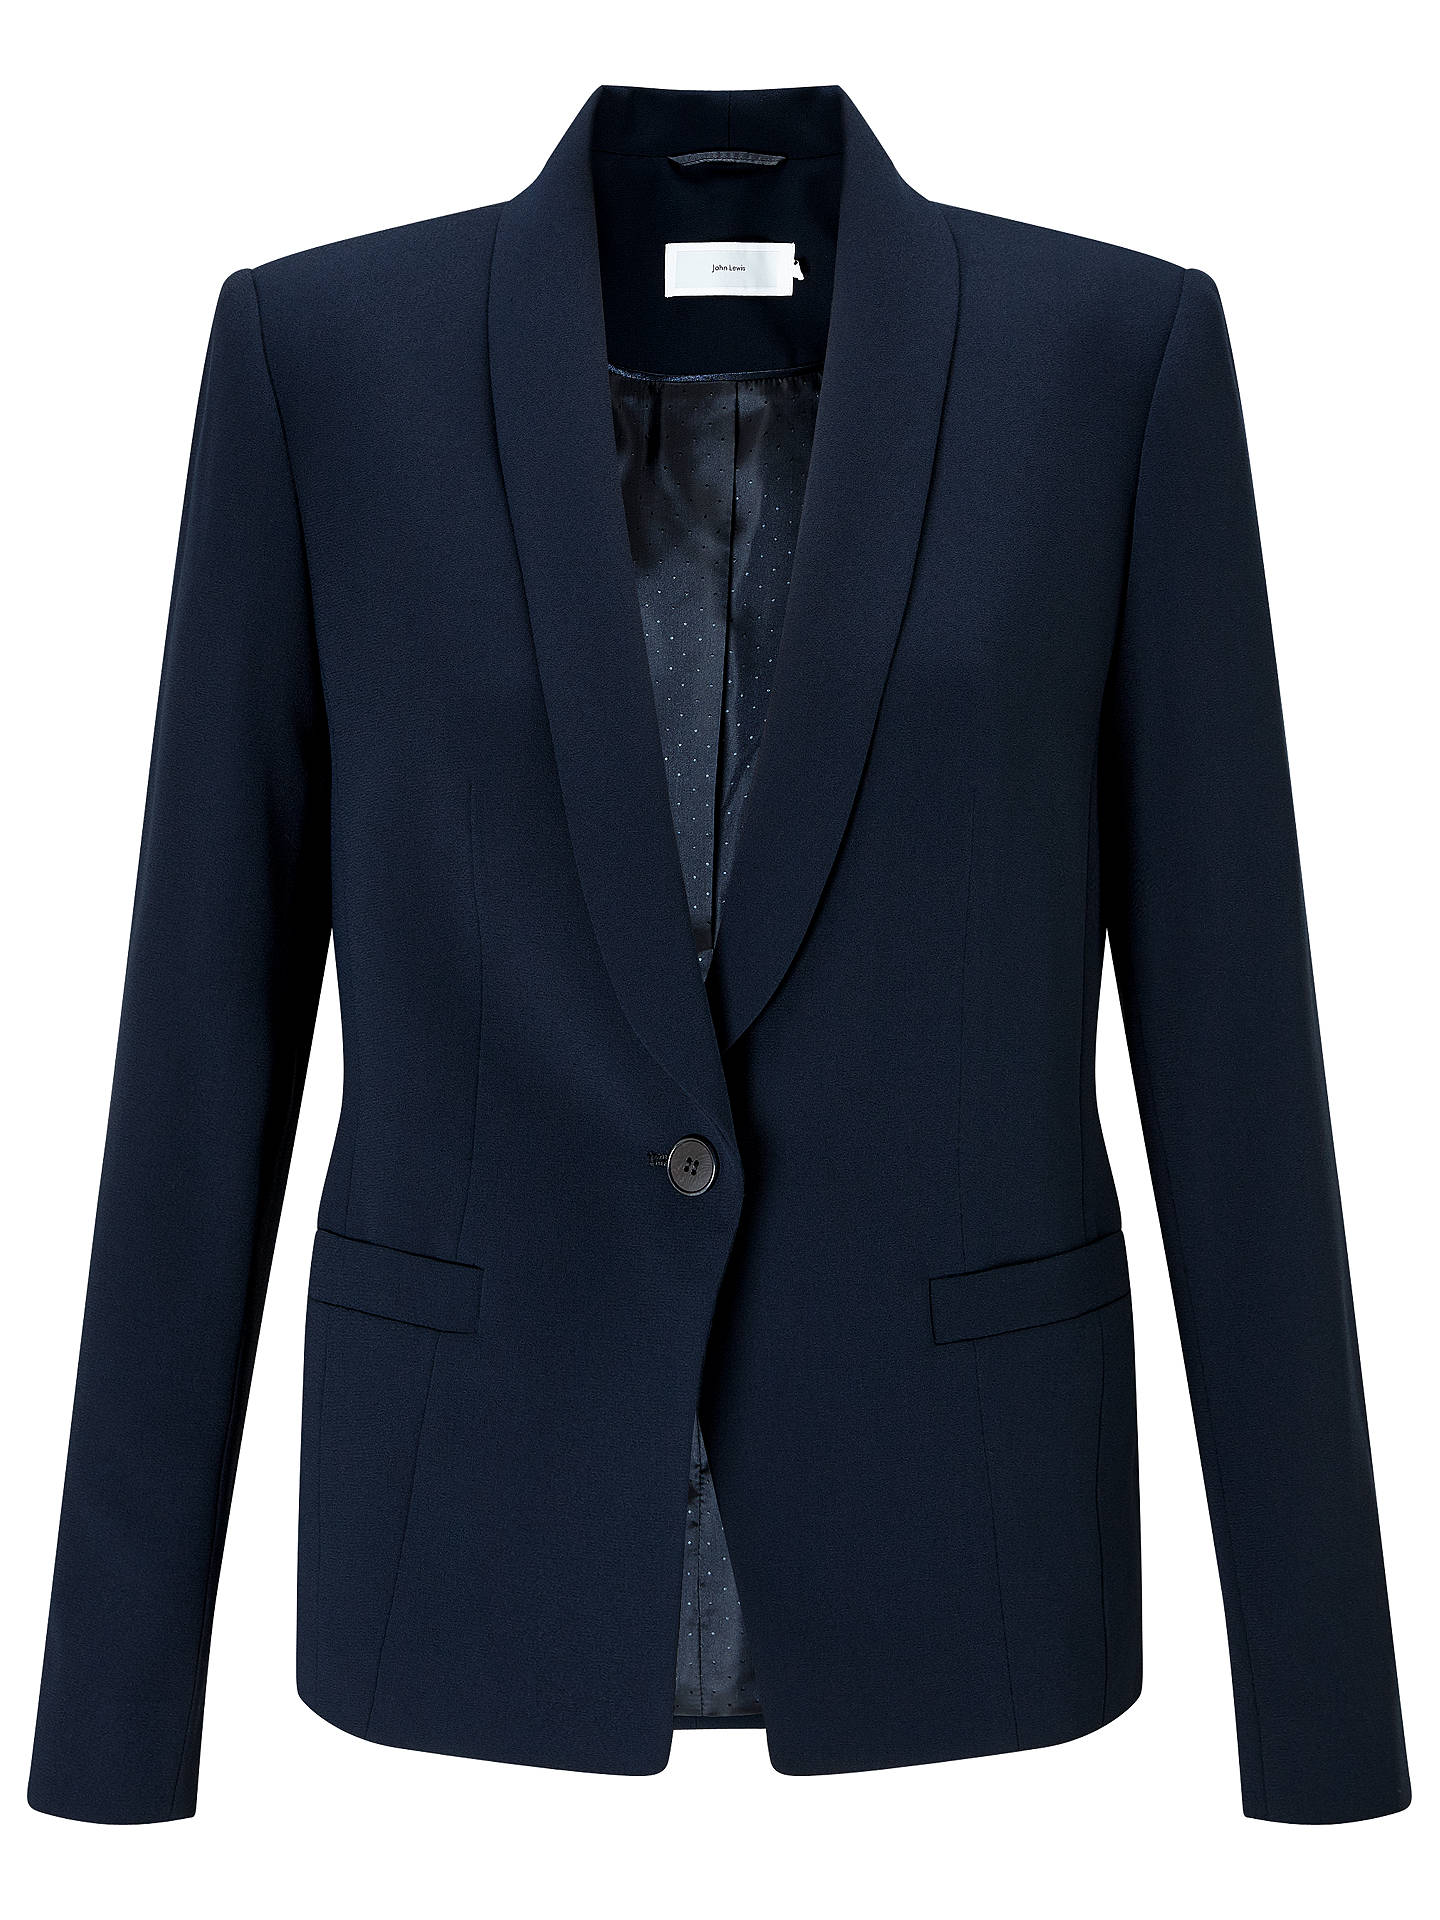 Buy John Lewis & Partners Eva Crepe Jacket, Navy, 8 Online at johnlewis.com